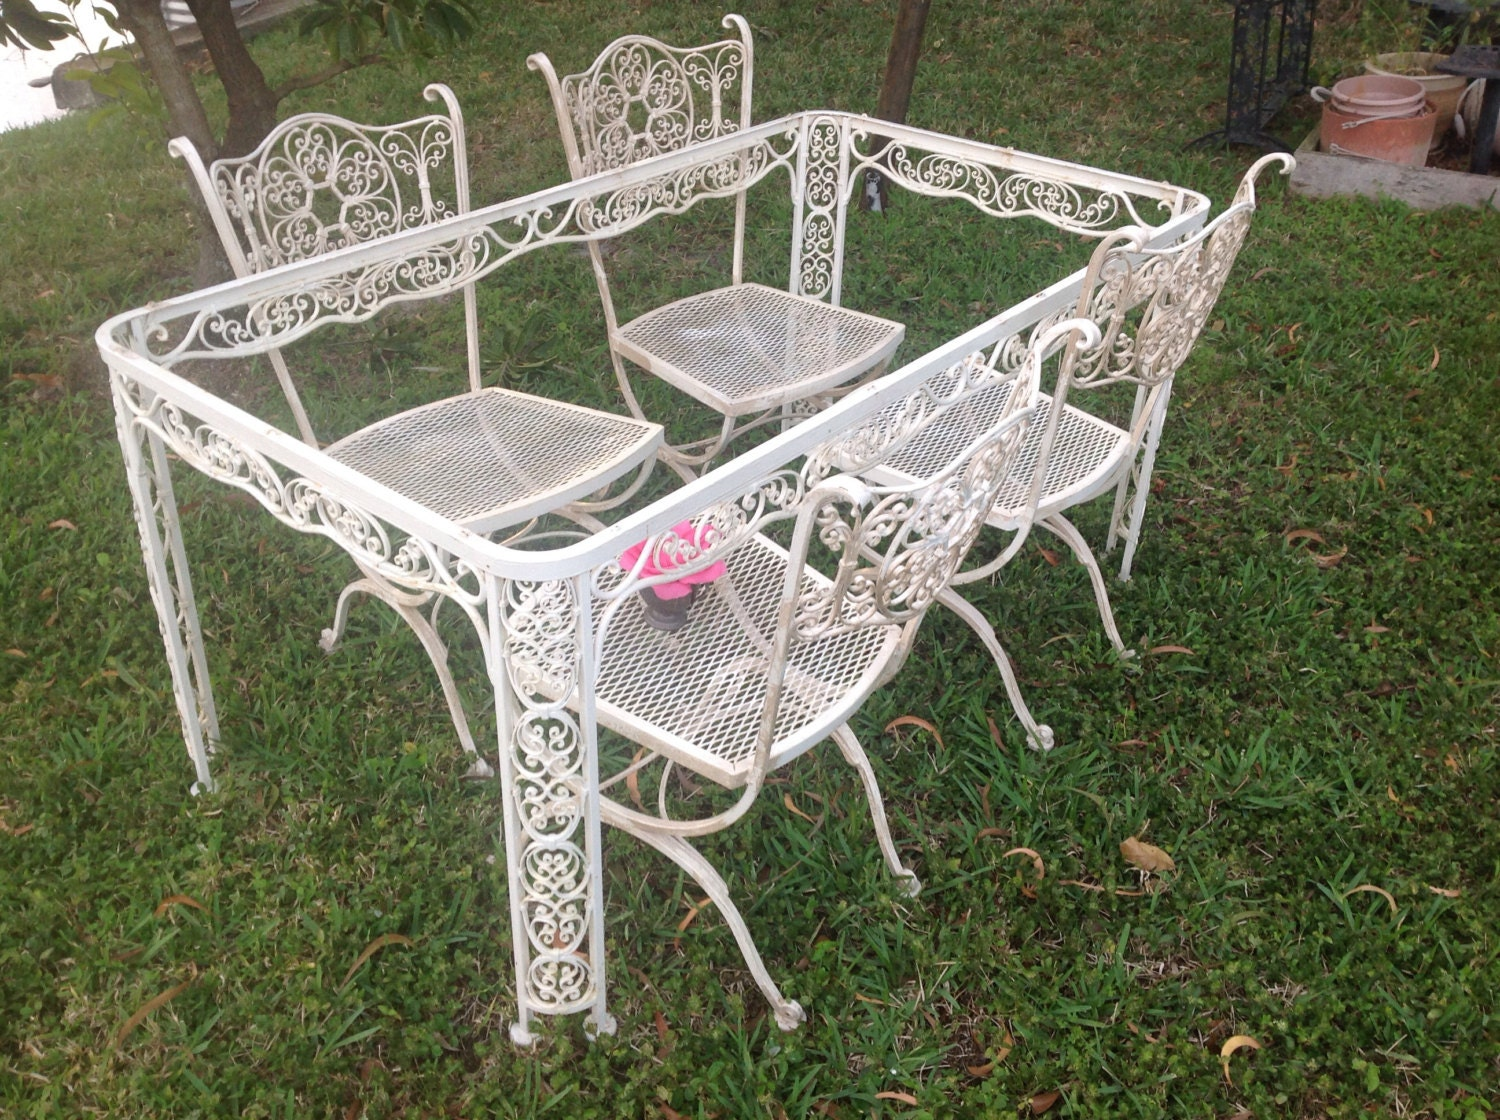 Wrought iron patio chairs vintage - Shabby Chic Woodard Wrought Iron Chairs Vintage By Etsy